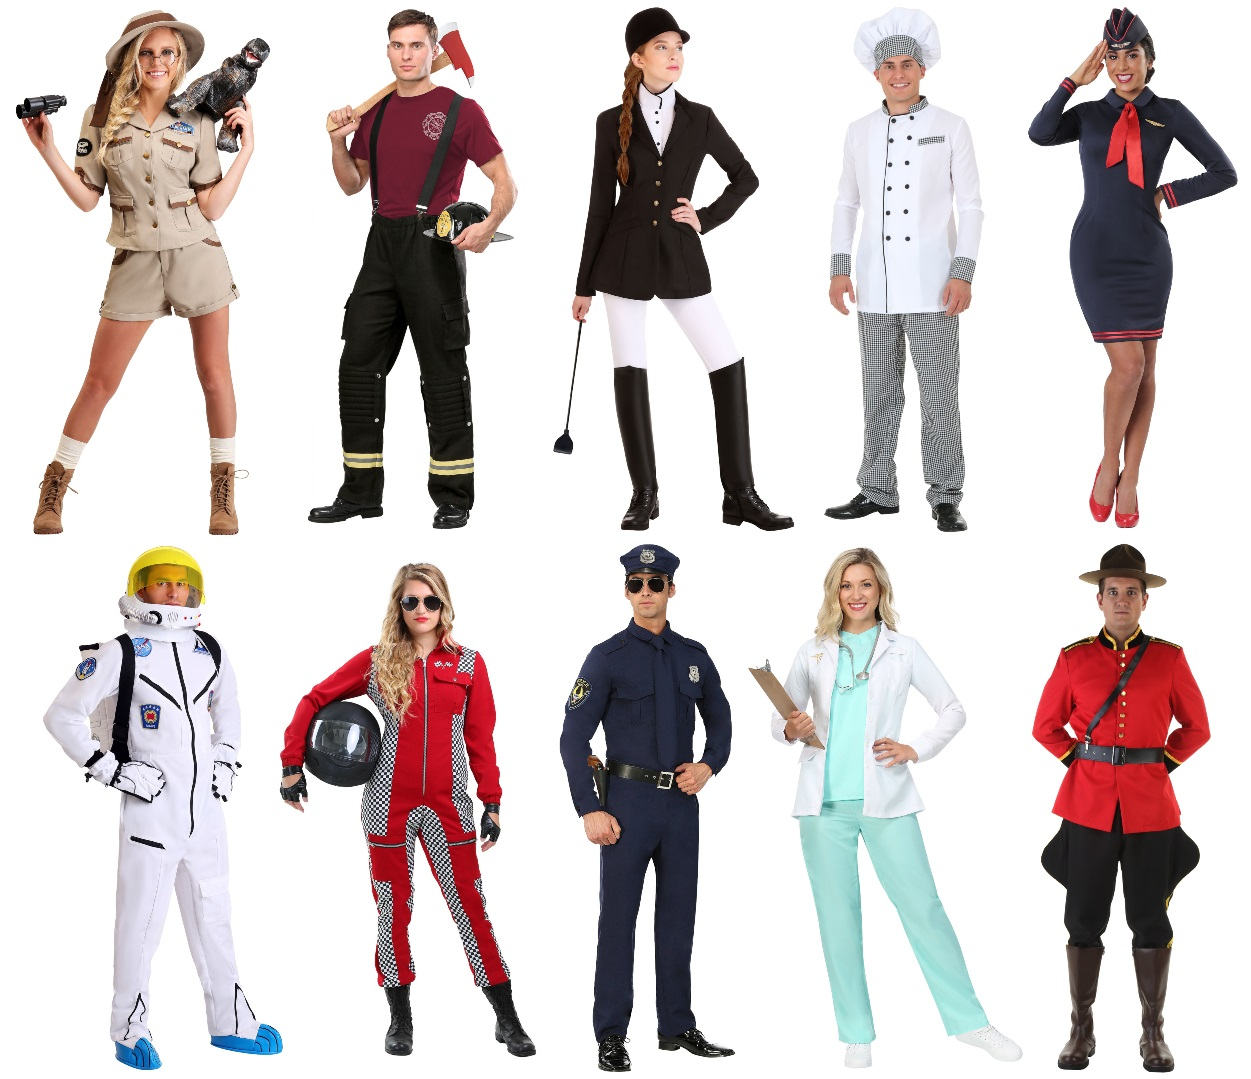 Occupation Costumes for Work